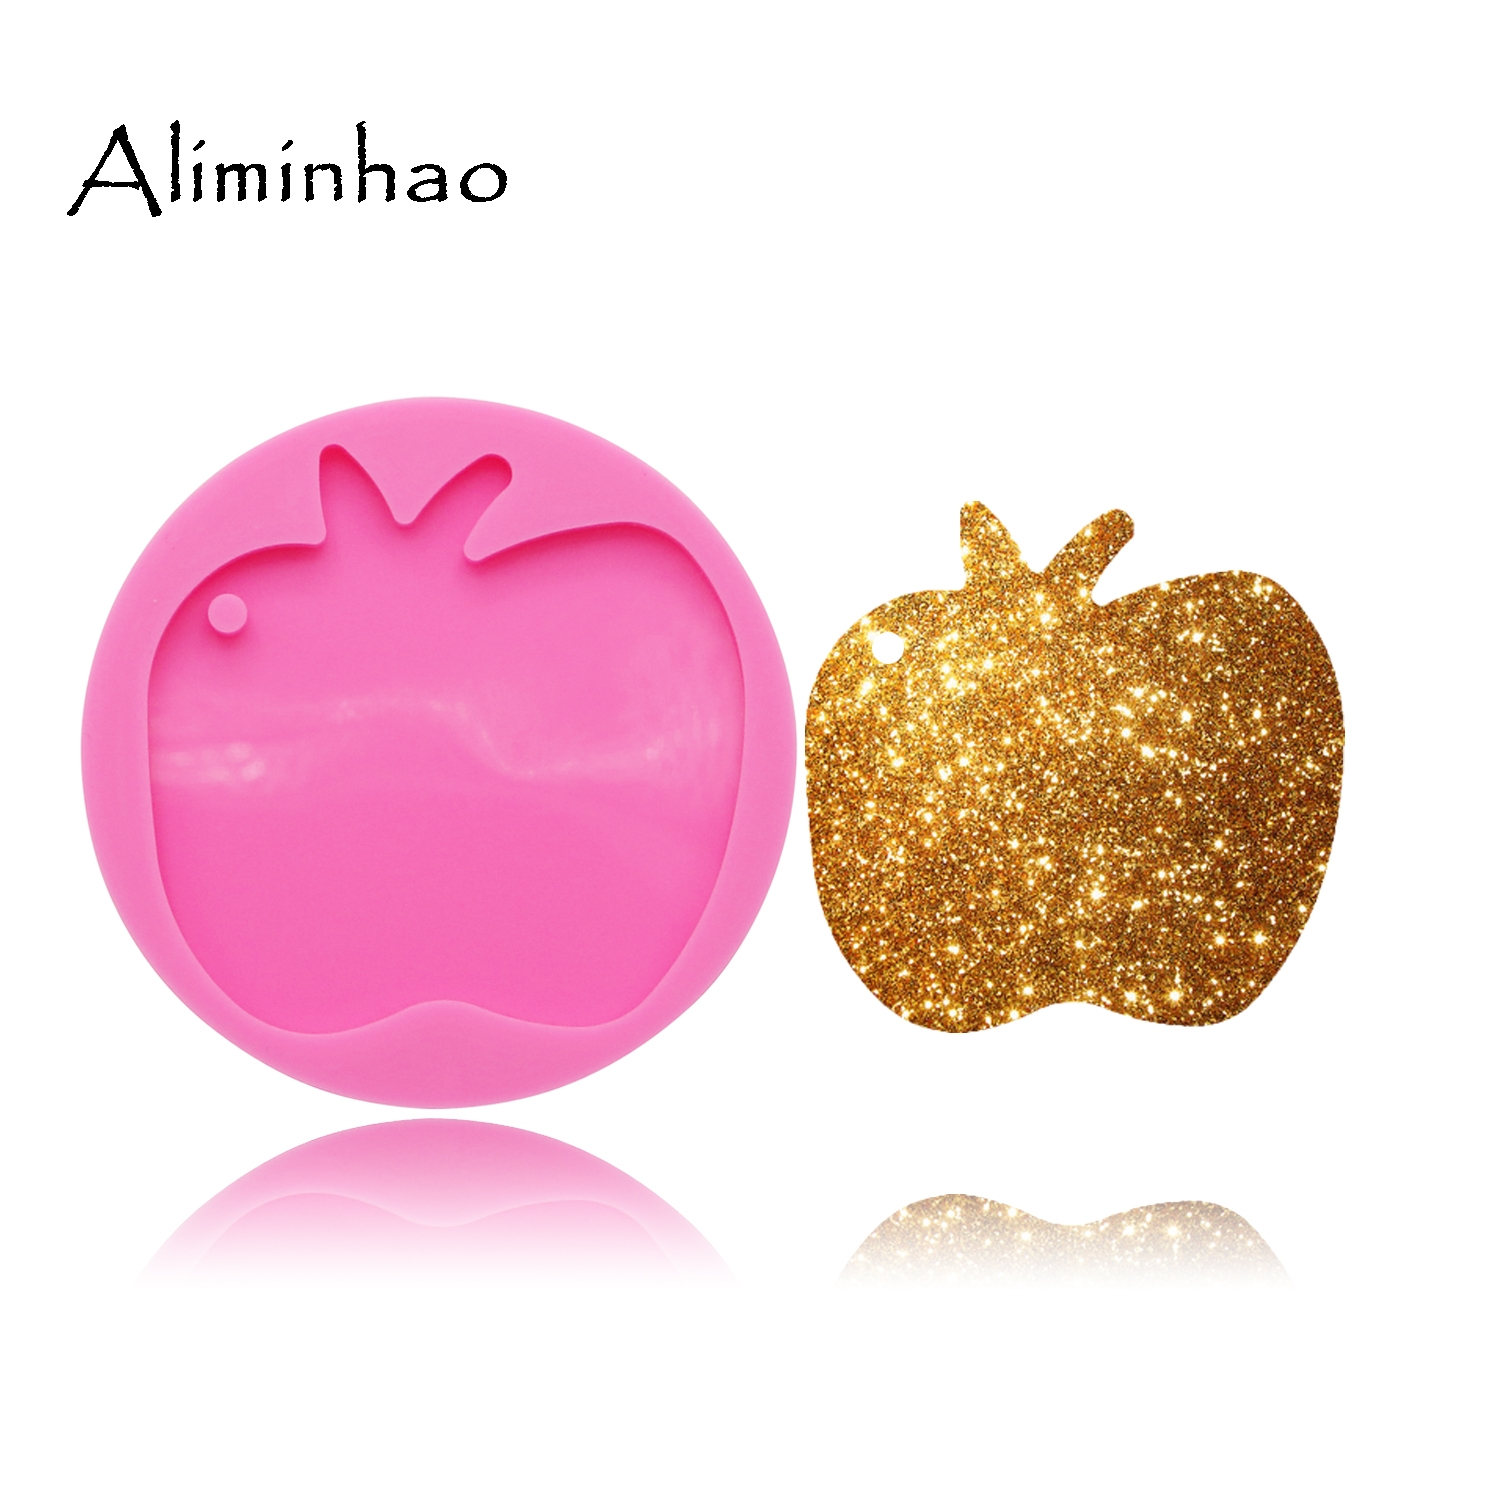 DY0081 Shiny Apple Silicone Keychains Mold Key Chain Pendant Clay DIY Jewelry Making Epoxy Resin Mold